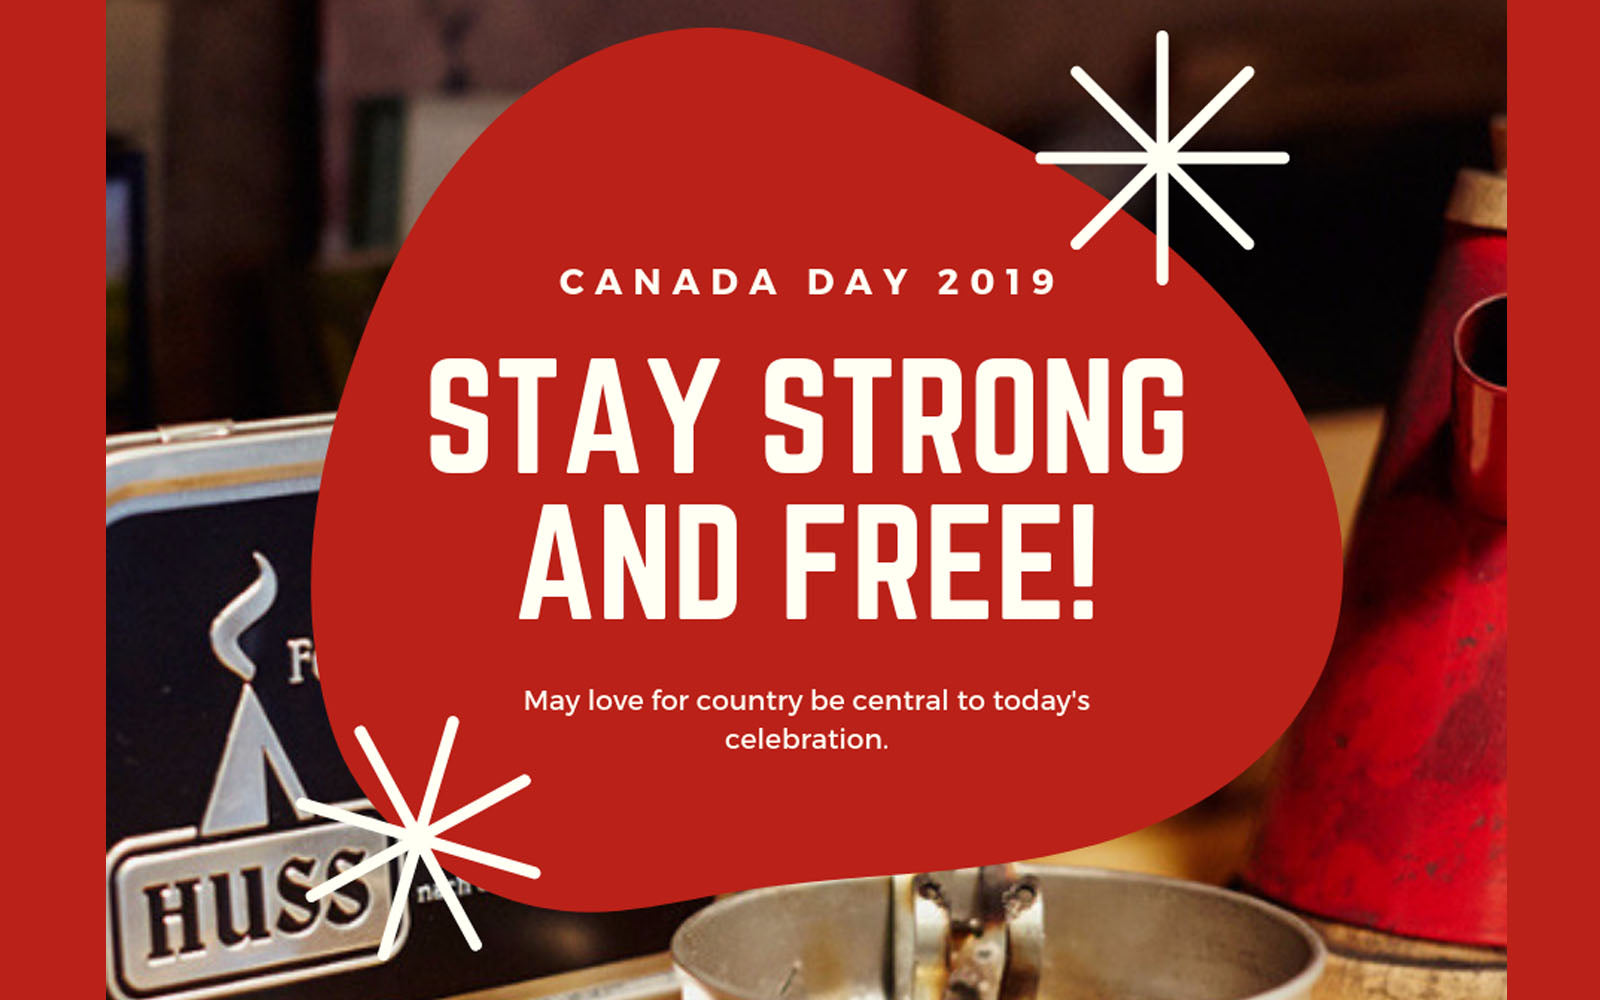 CANADA DAY AND OTHER FAVOURITE HOLIDAYS IN CANADA